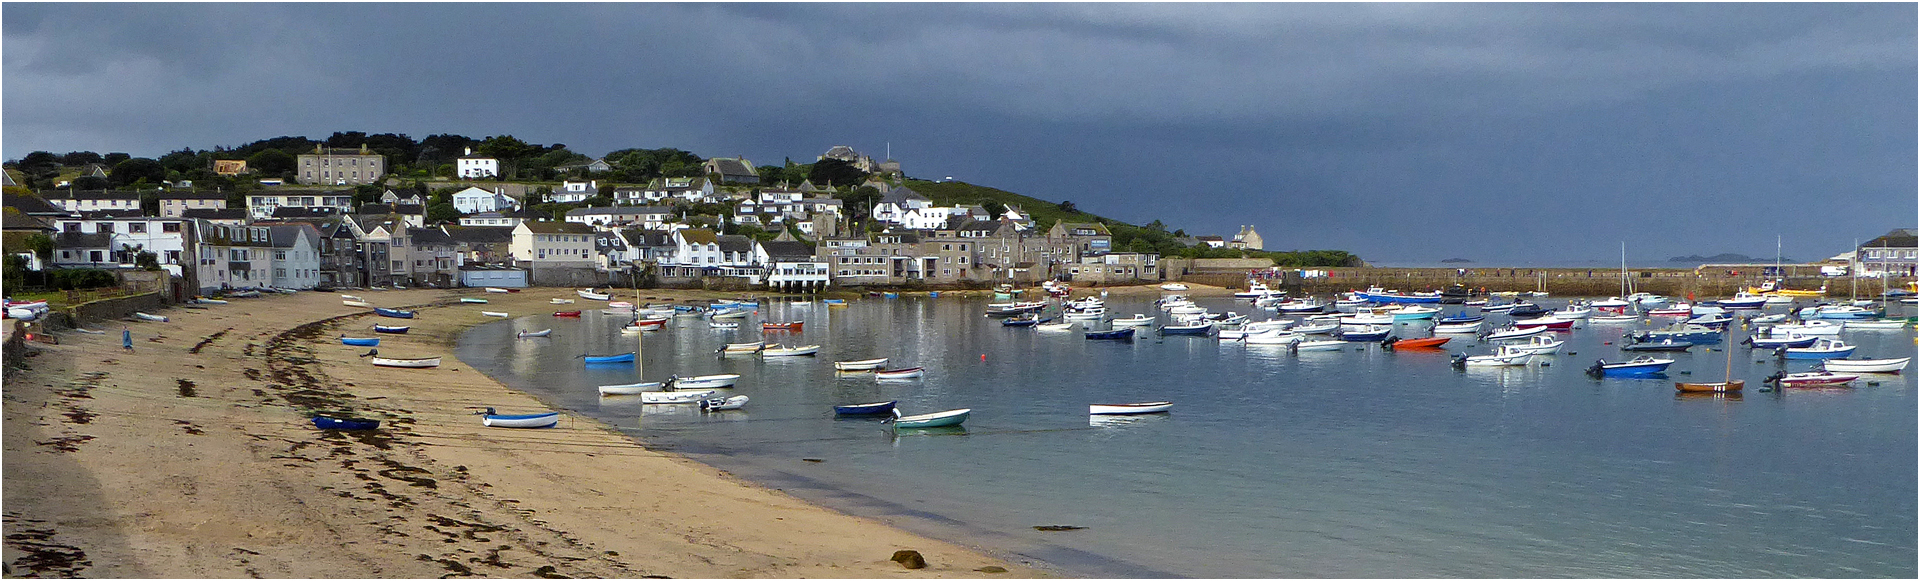 Hugh Town, Isles of Scilly- Christine Wetton